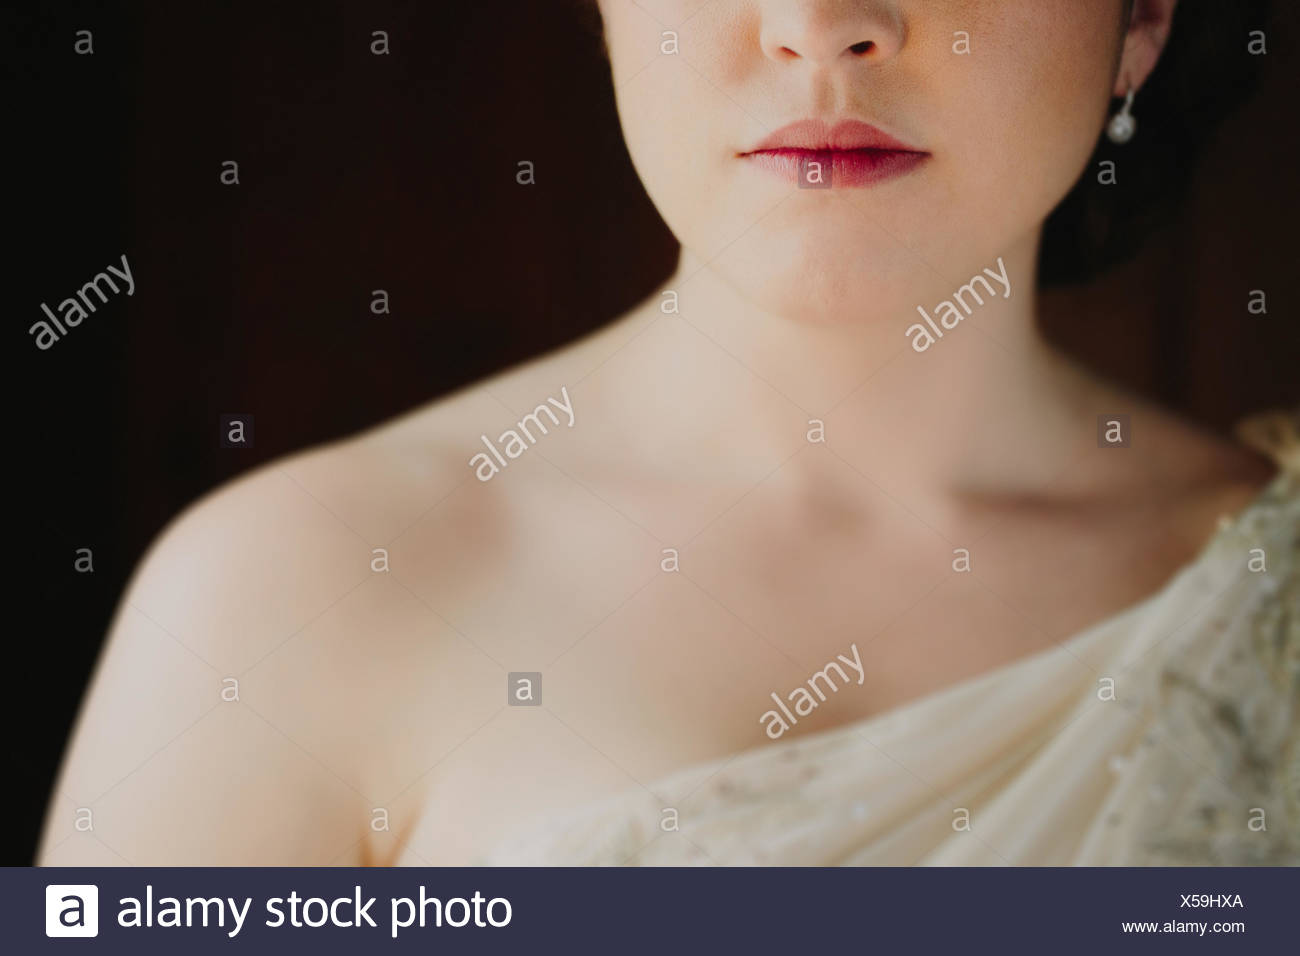 Close up of woman in wedding dress - Stock Image